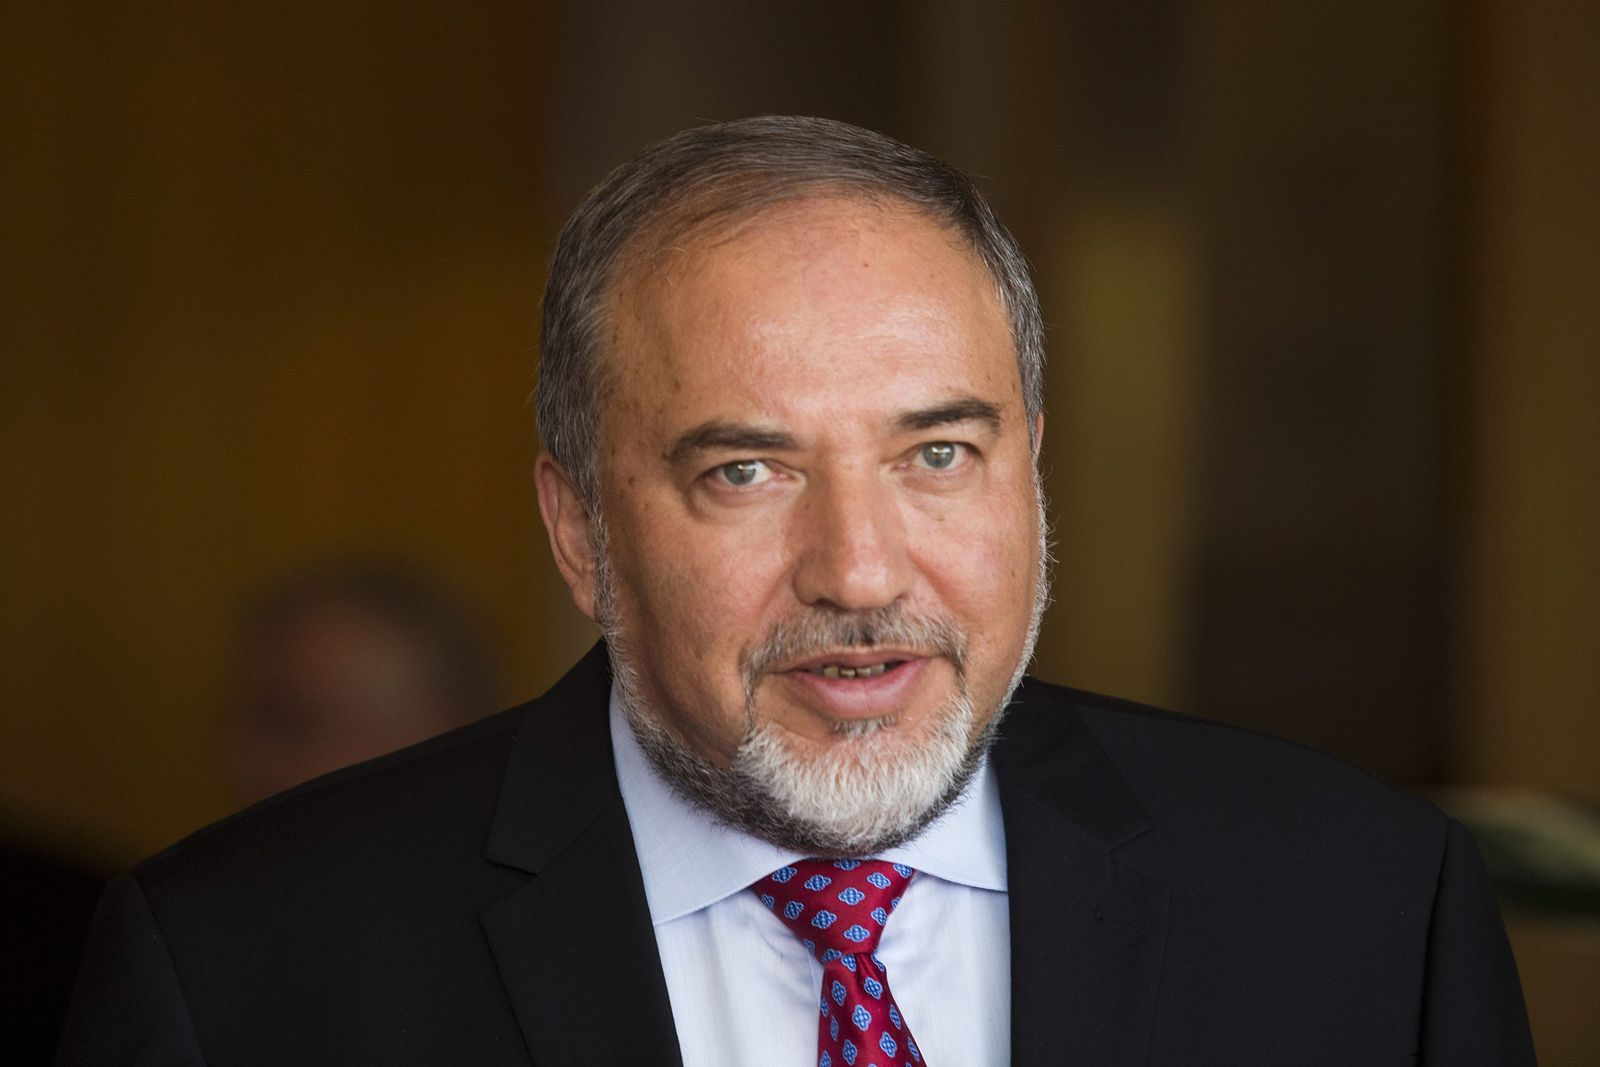 Hamas planned to assassinate Israeli foreign minister, report say